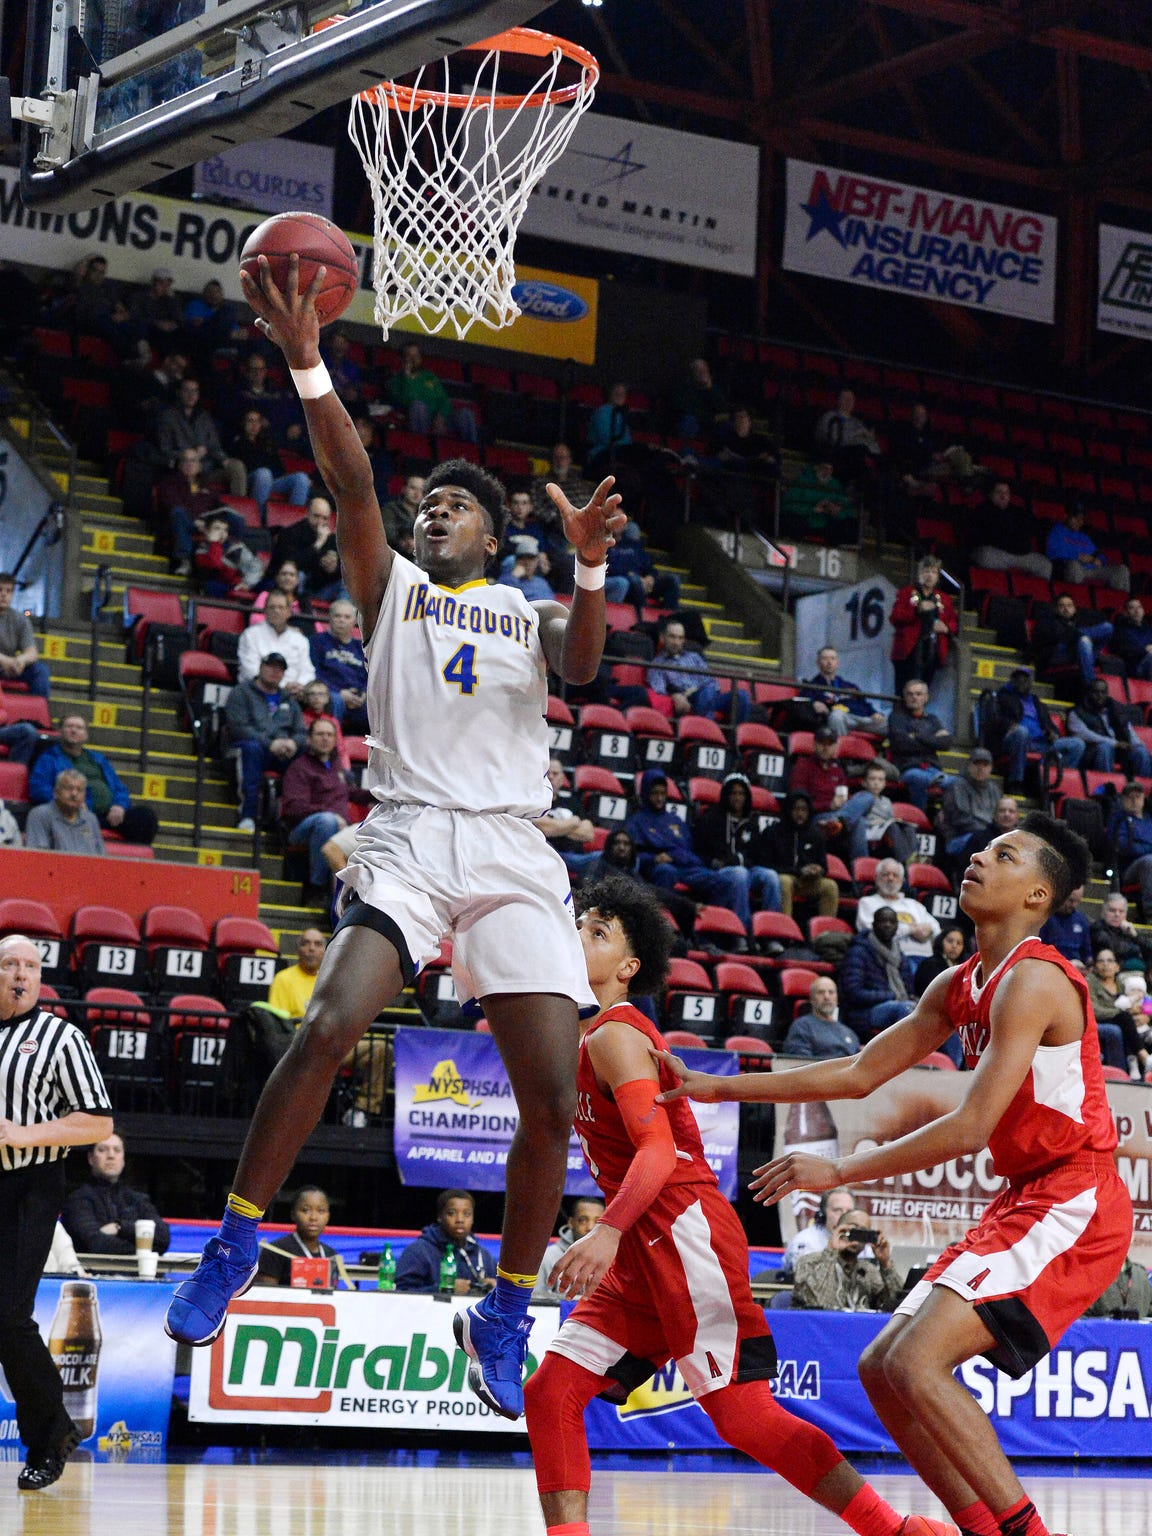 Irondequoit's Gerald Drumgoole drives to the basket